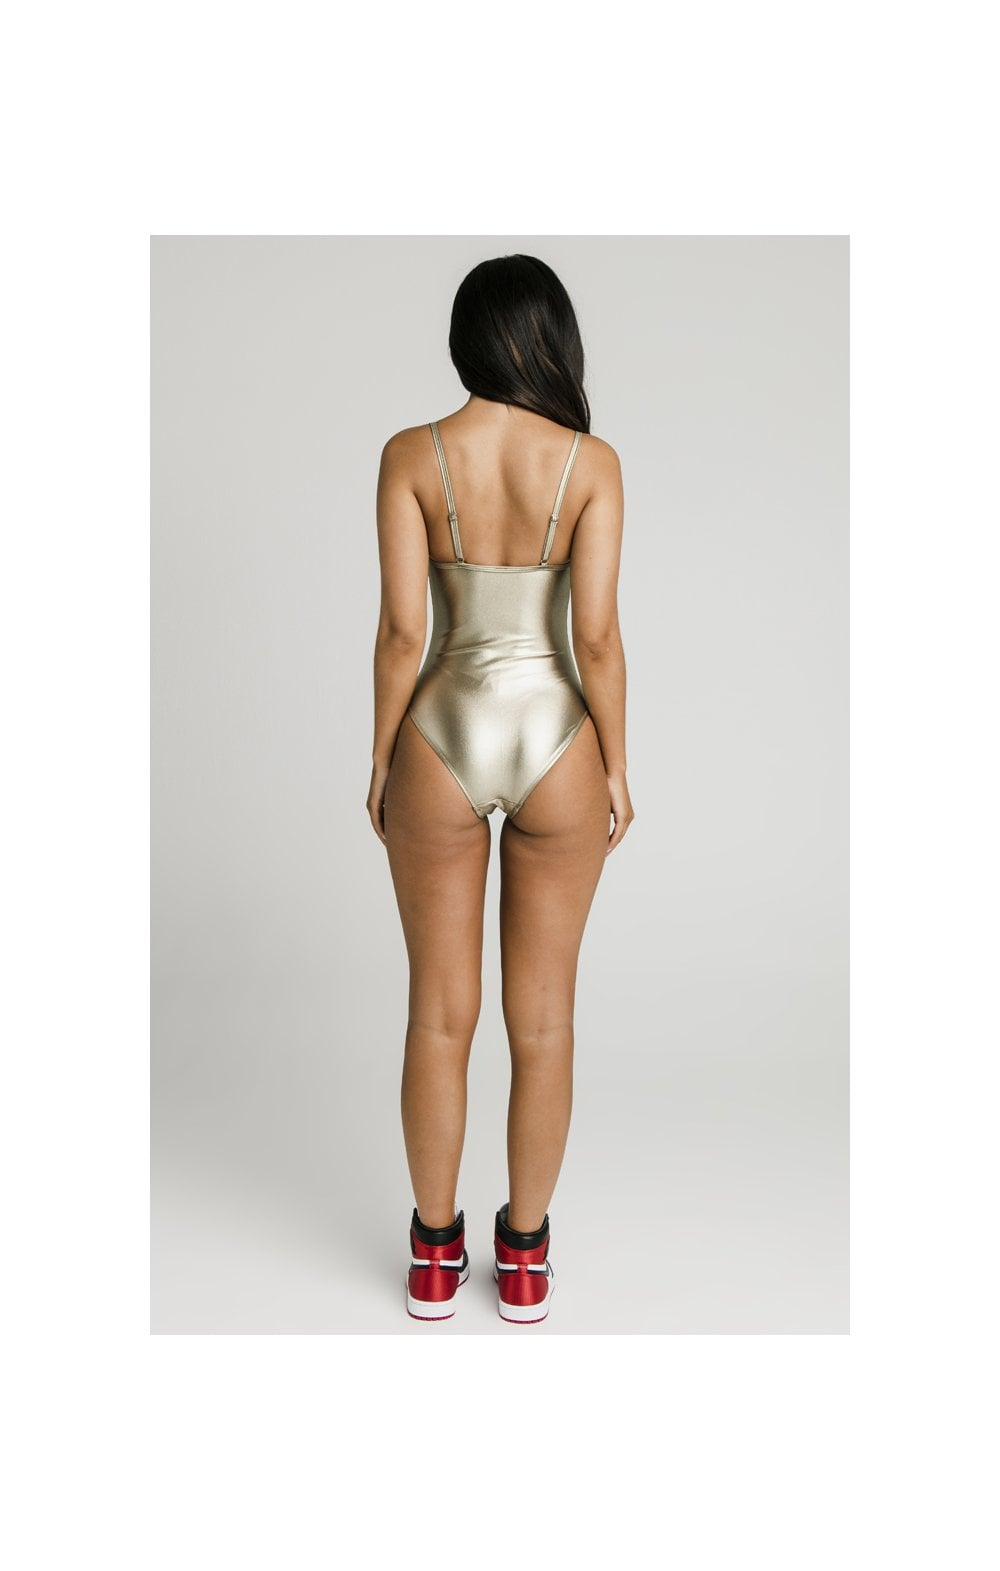 SikSilk Metalic Swimsuit - Gold (5)